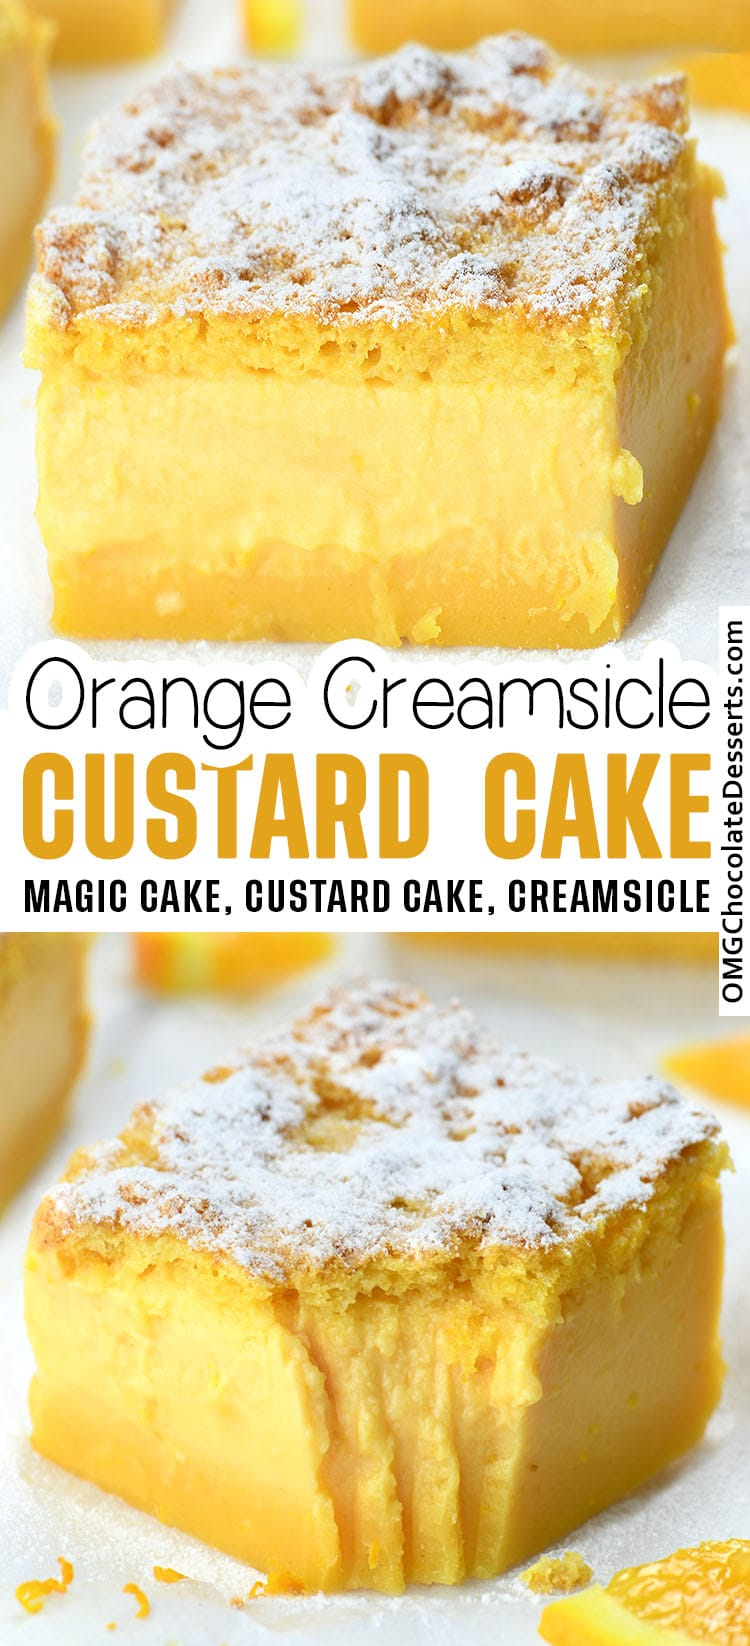 Two images of Orange Custard Cake with recipe title between.